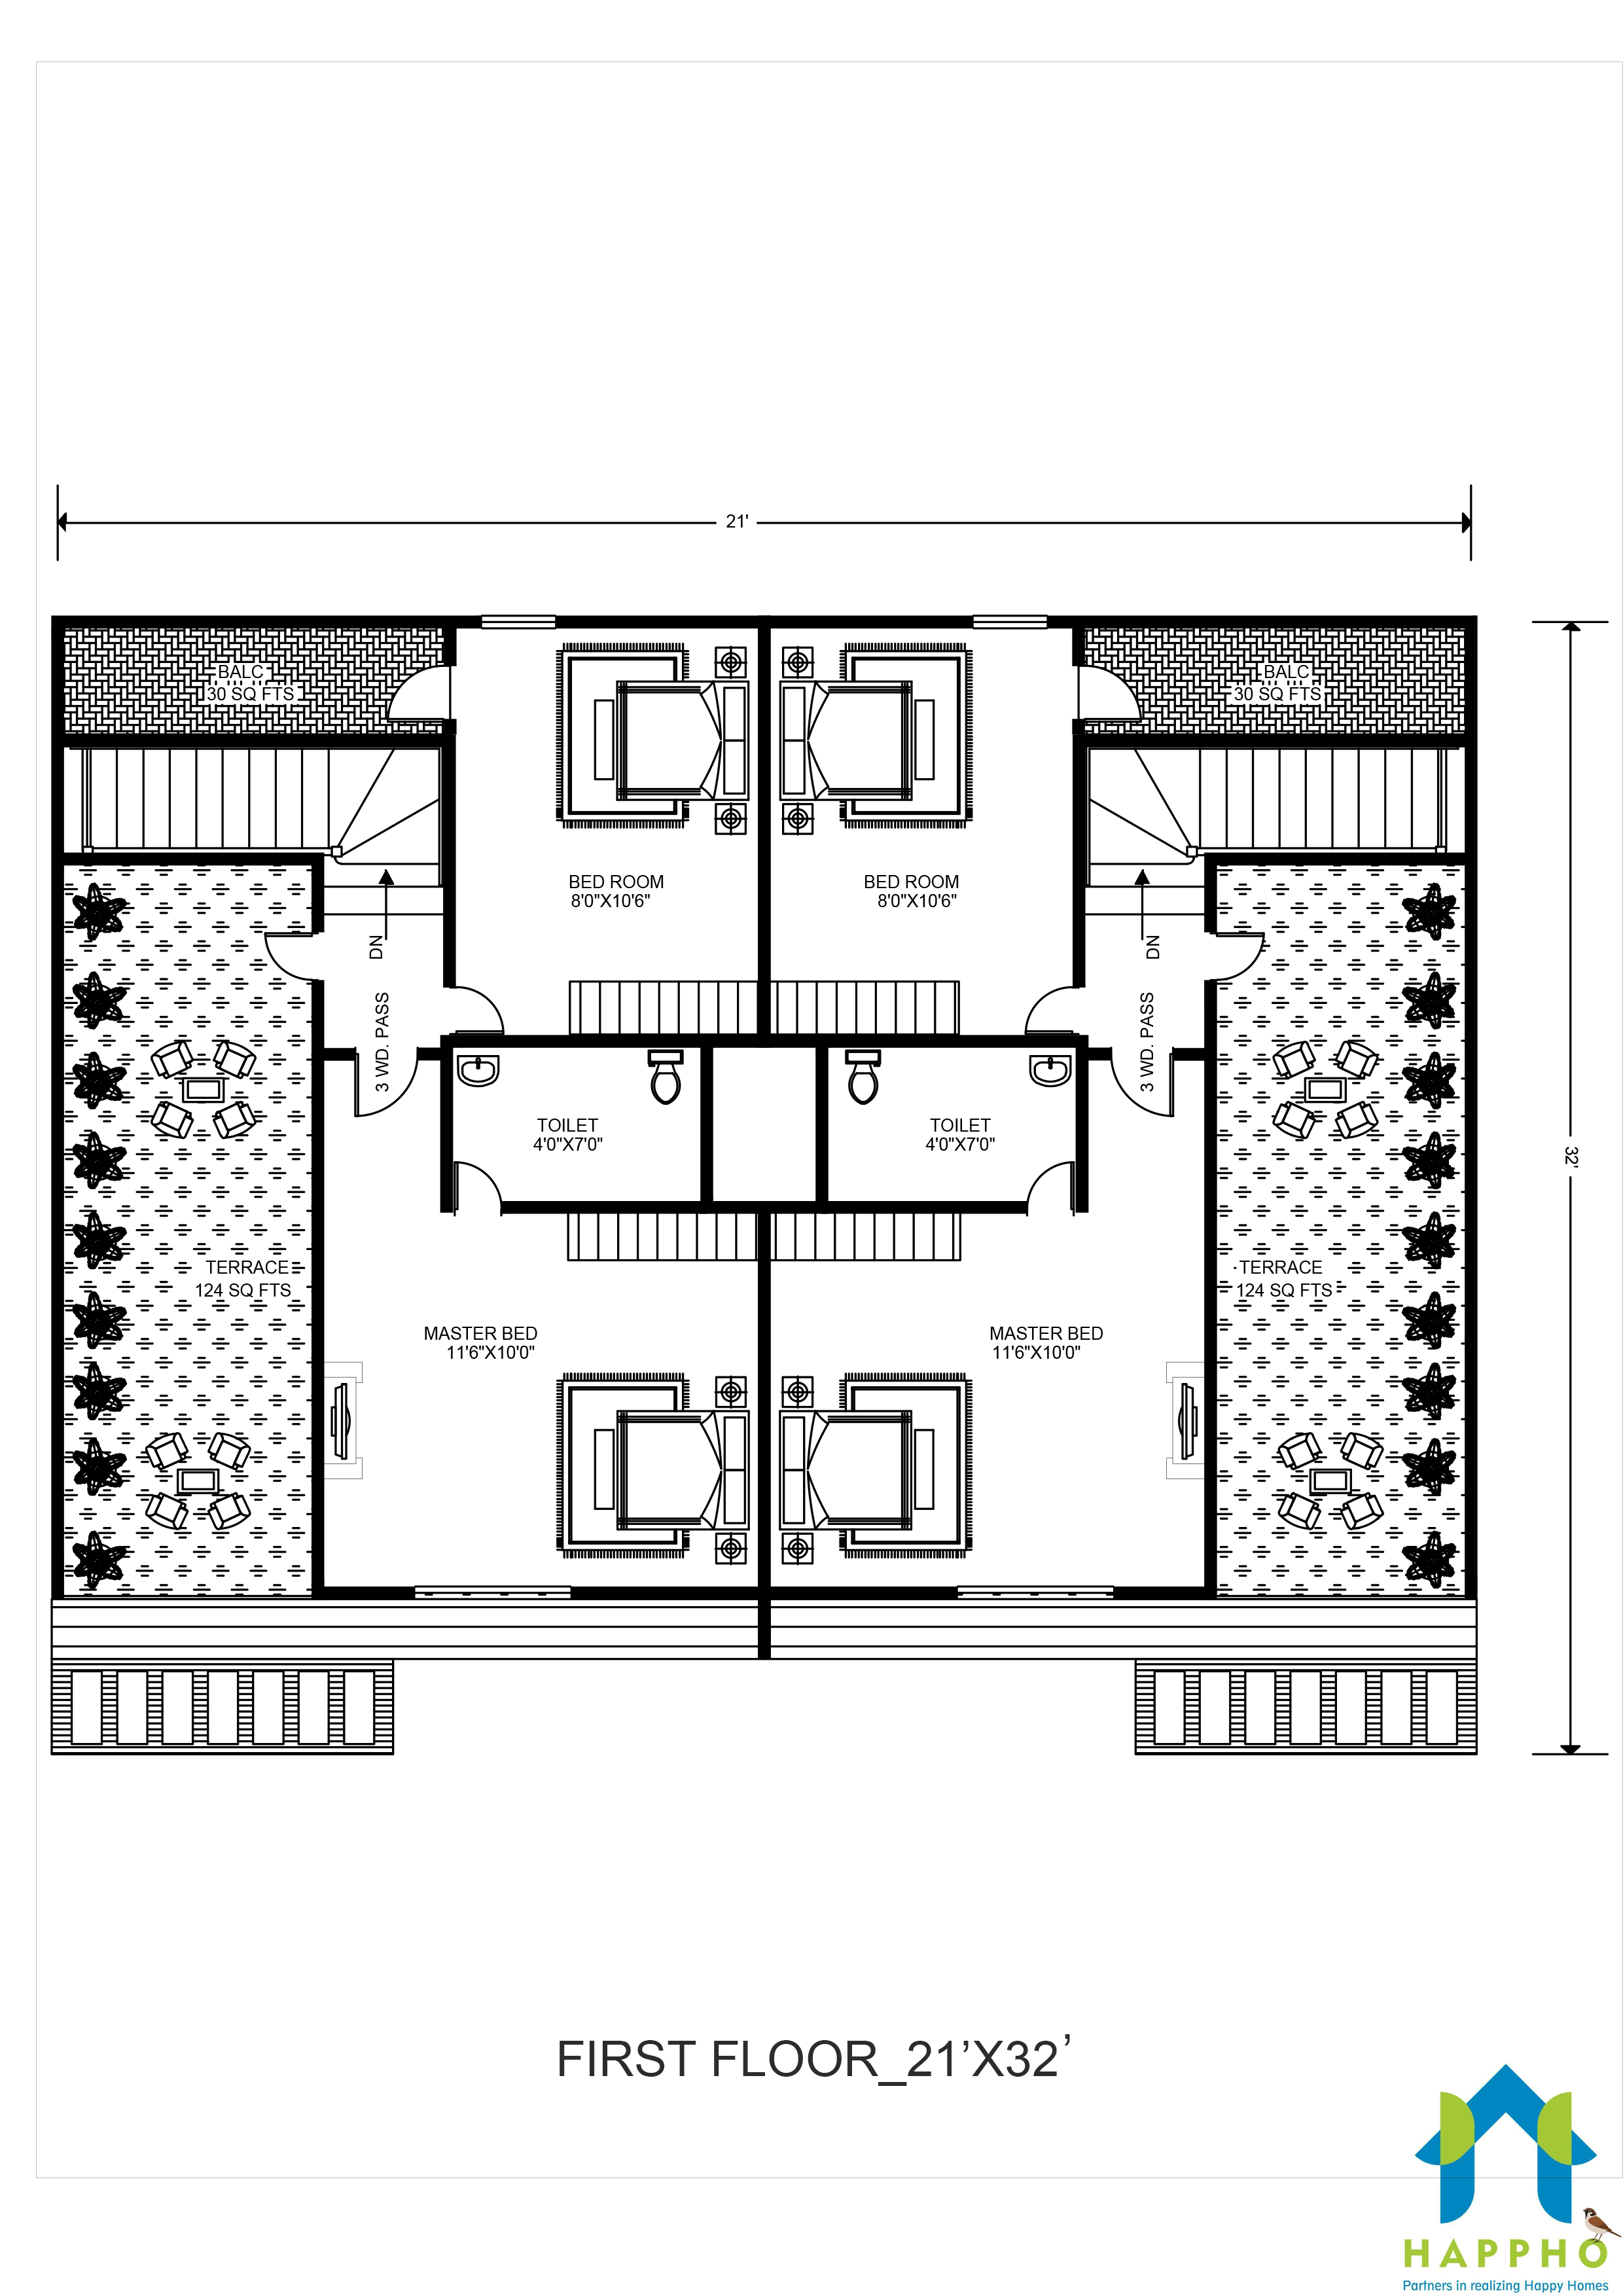 How To Read A House Floor Plans